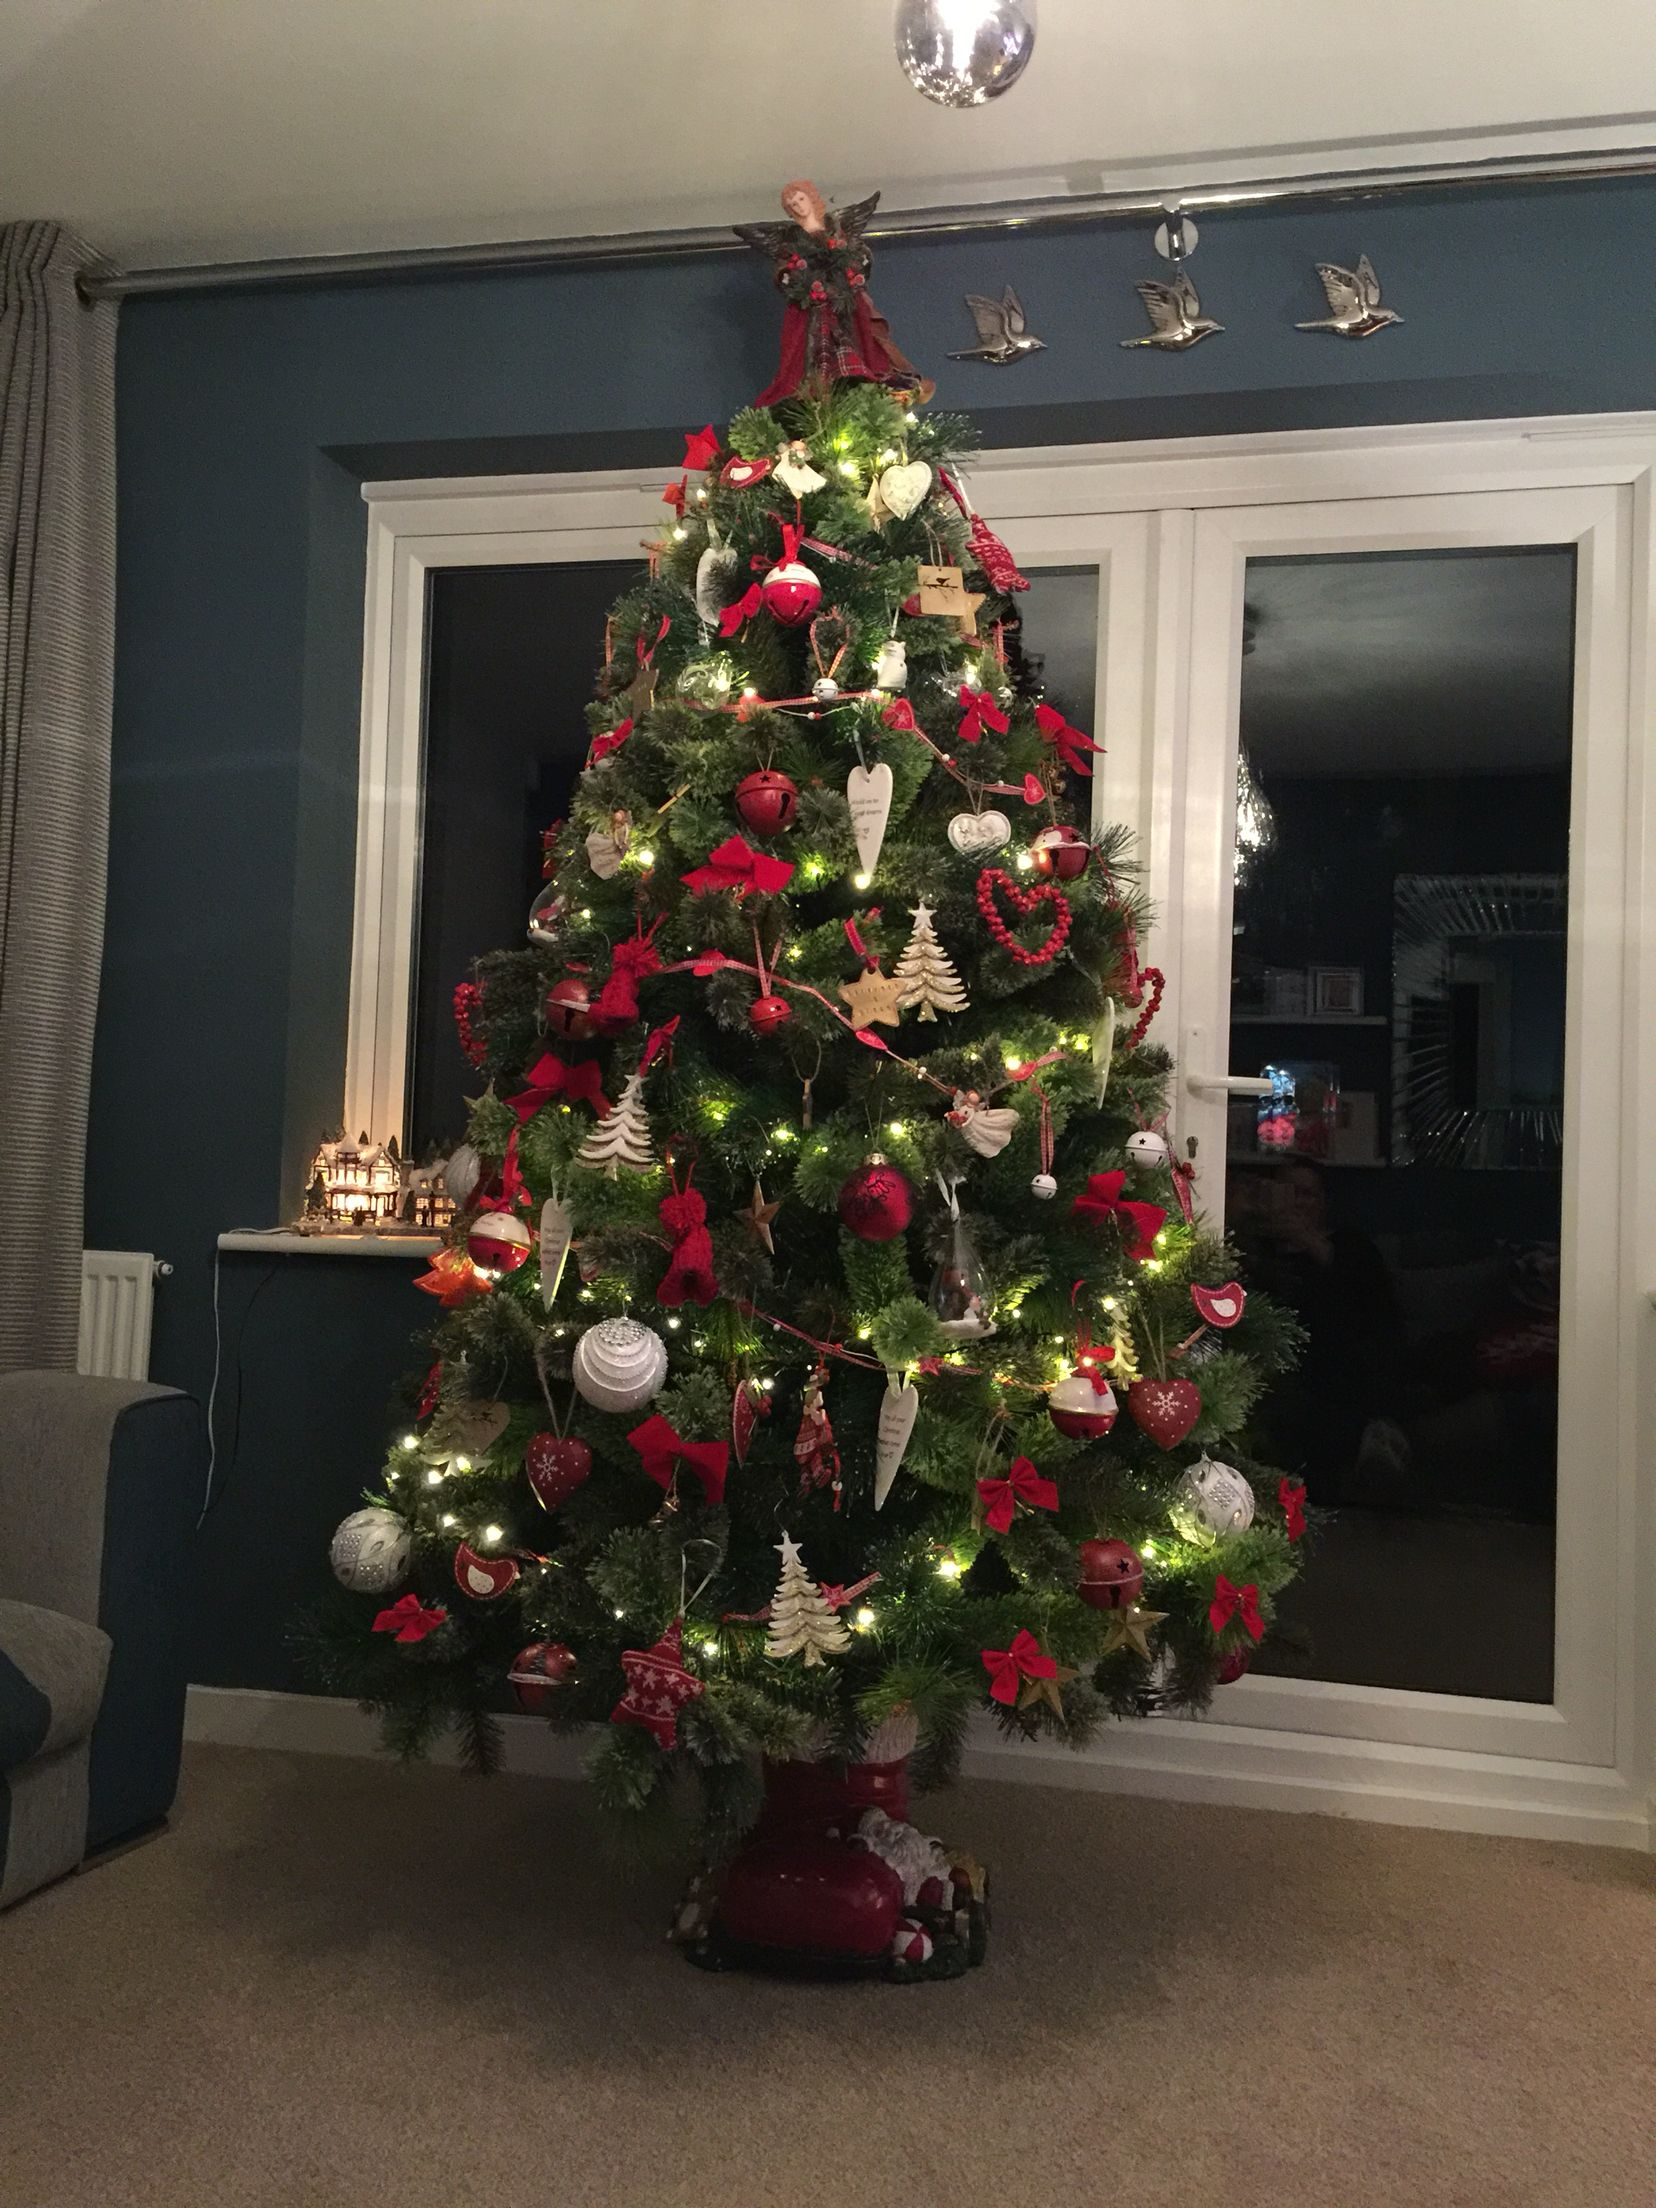 Christmas Tree Red White And Gold Decorations Sitting In A